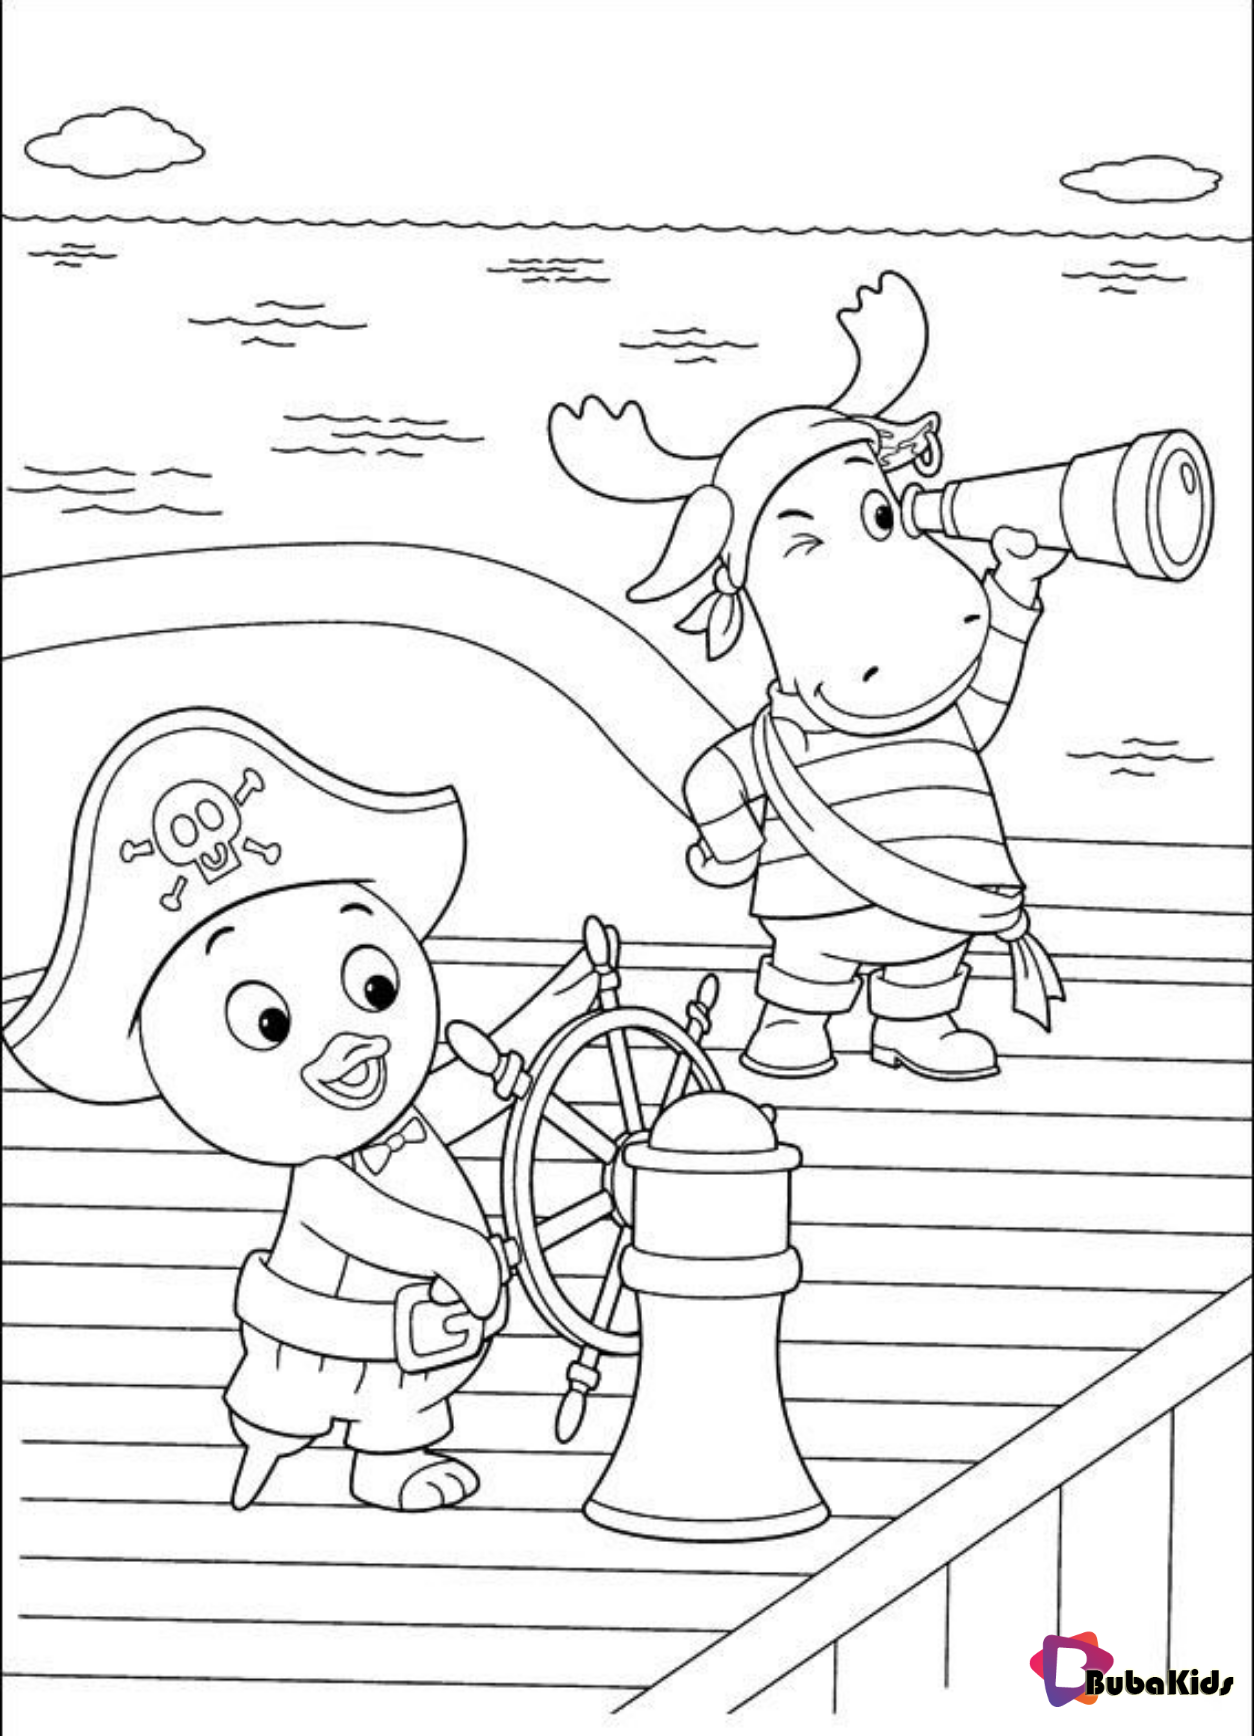 The Backyardigans Printable Coloring Pages Backyardigans Bubakids Com Backyardigans Bubakid Coloring Pages Printable Coloring Pages Cartoon Coloring Pages